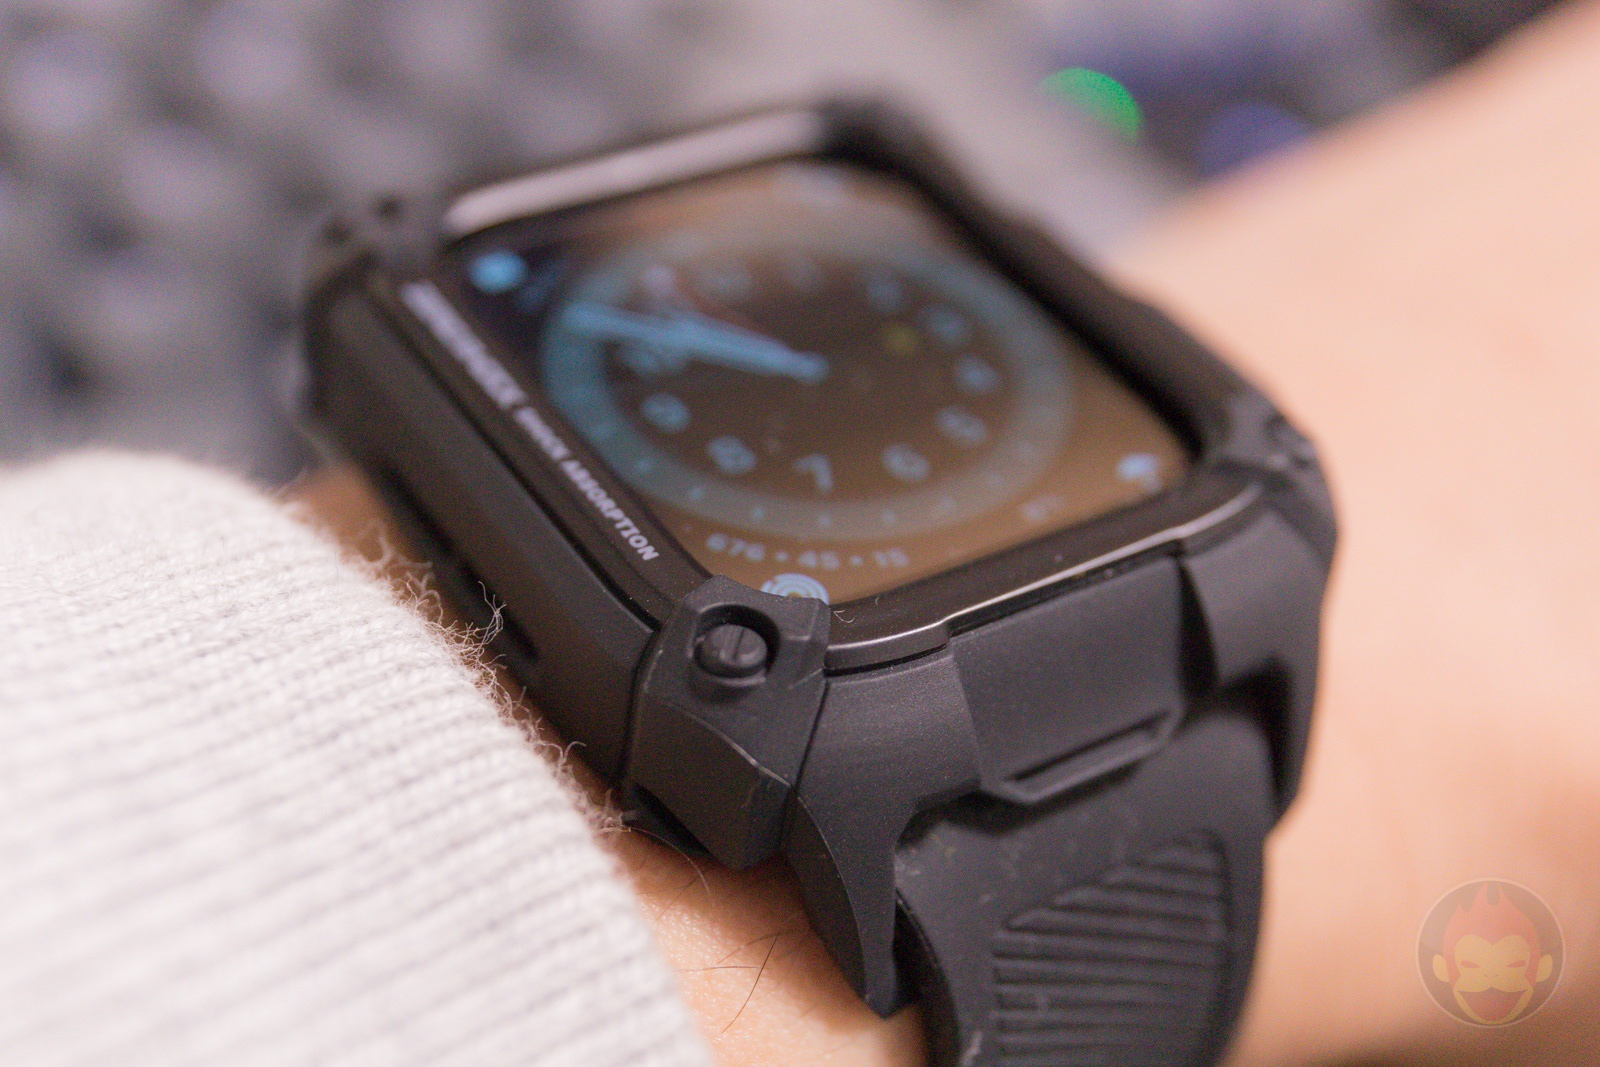 Apple-Watch-G-SHOCK-Elecom-Case-and-UAG-Band-Review-12.jpg